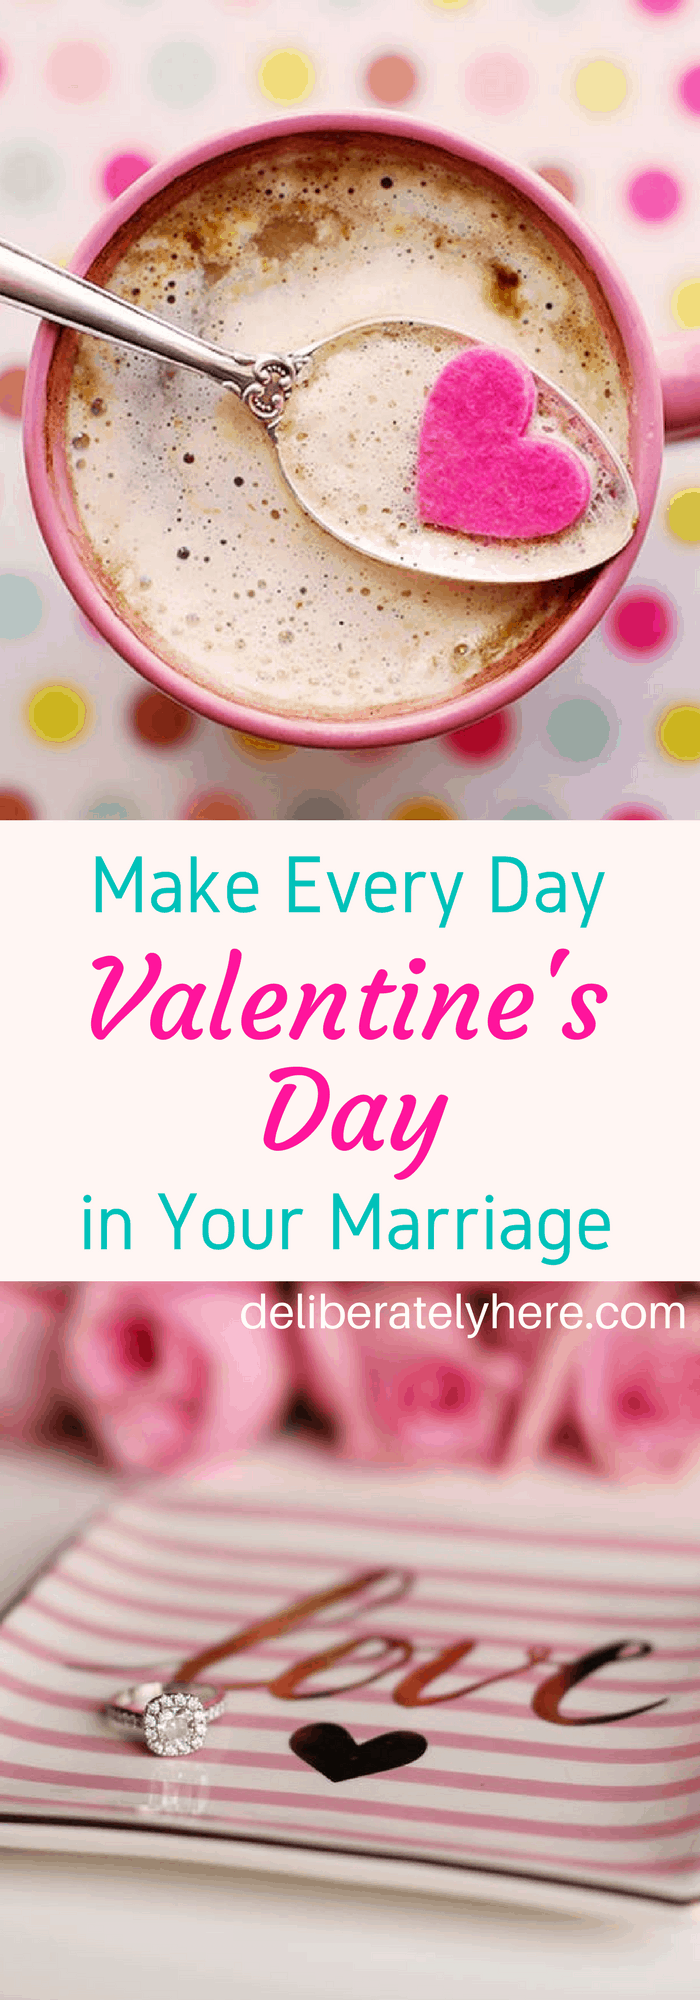 Make Every Day Valentine's Day in Your Marriage